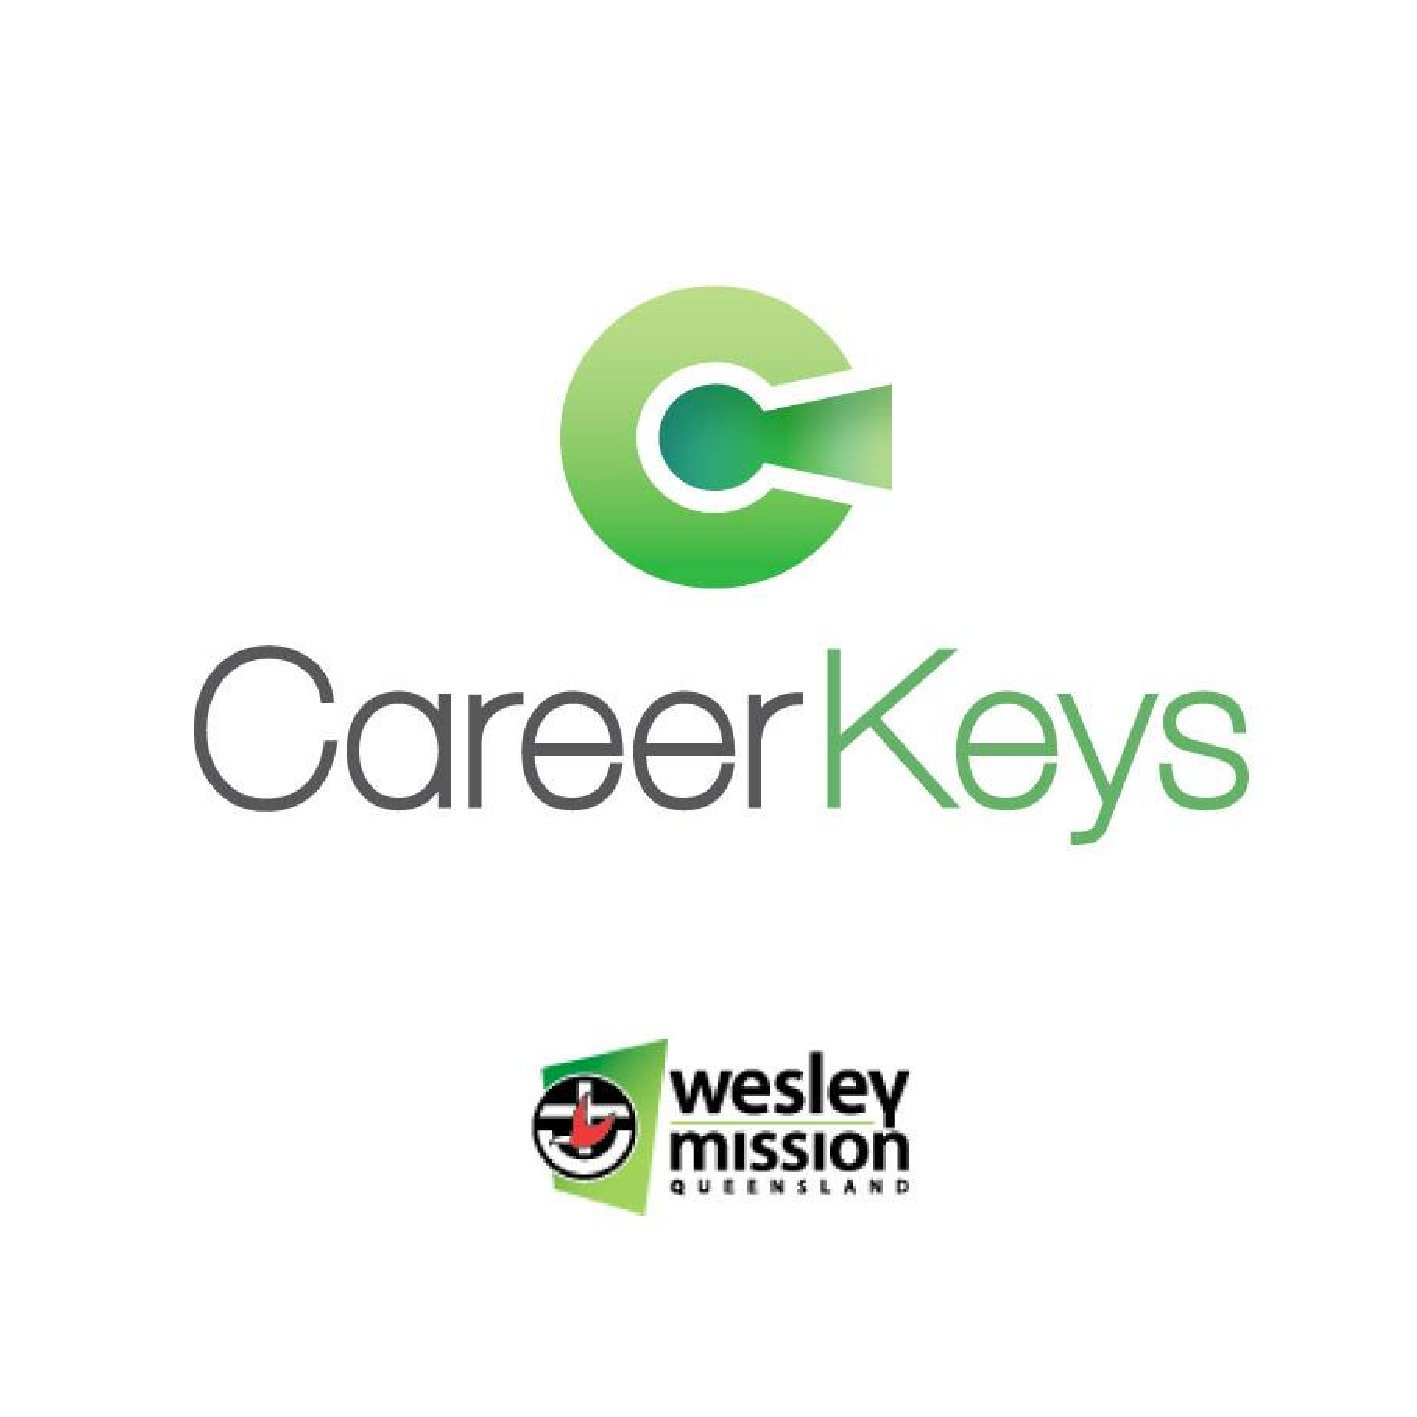 Career Keys Wesley Mission Logo Design